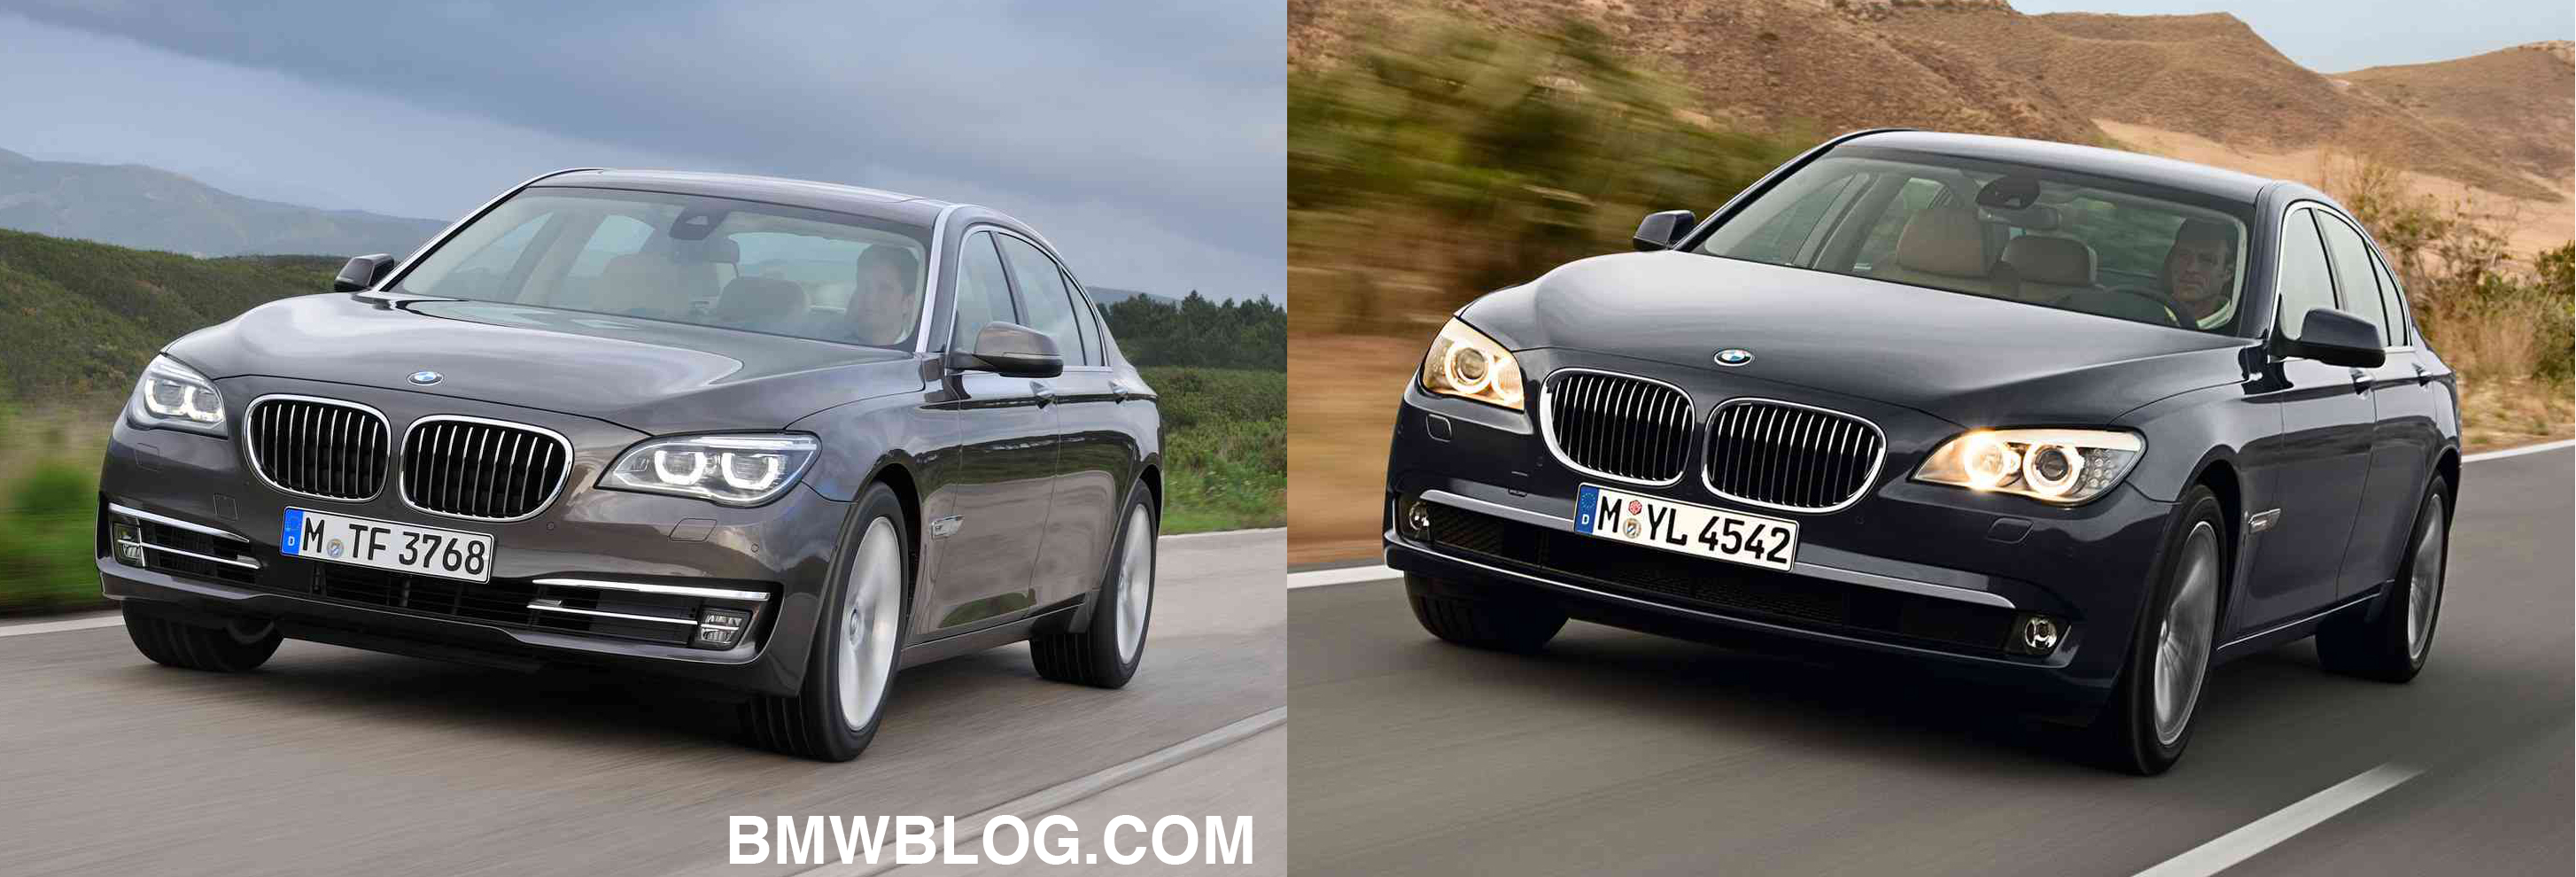 Photo Comparison New Bmw 7 Series Facelift Vs Pre